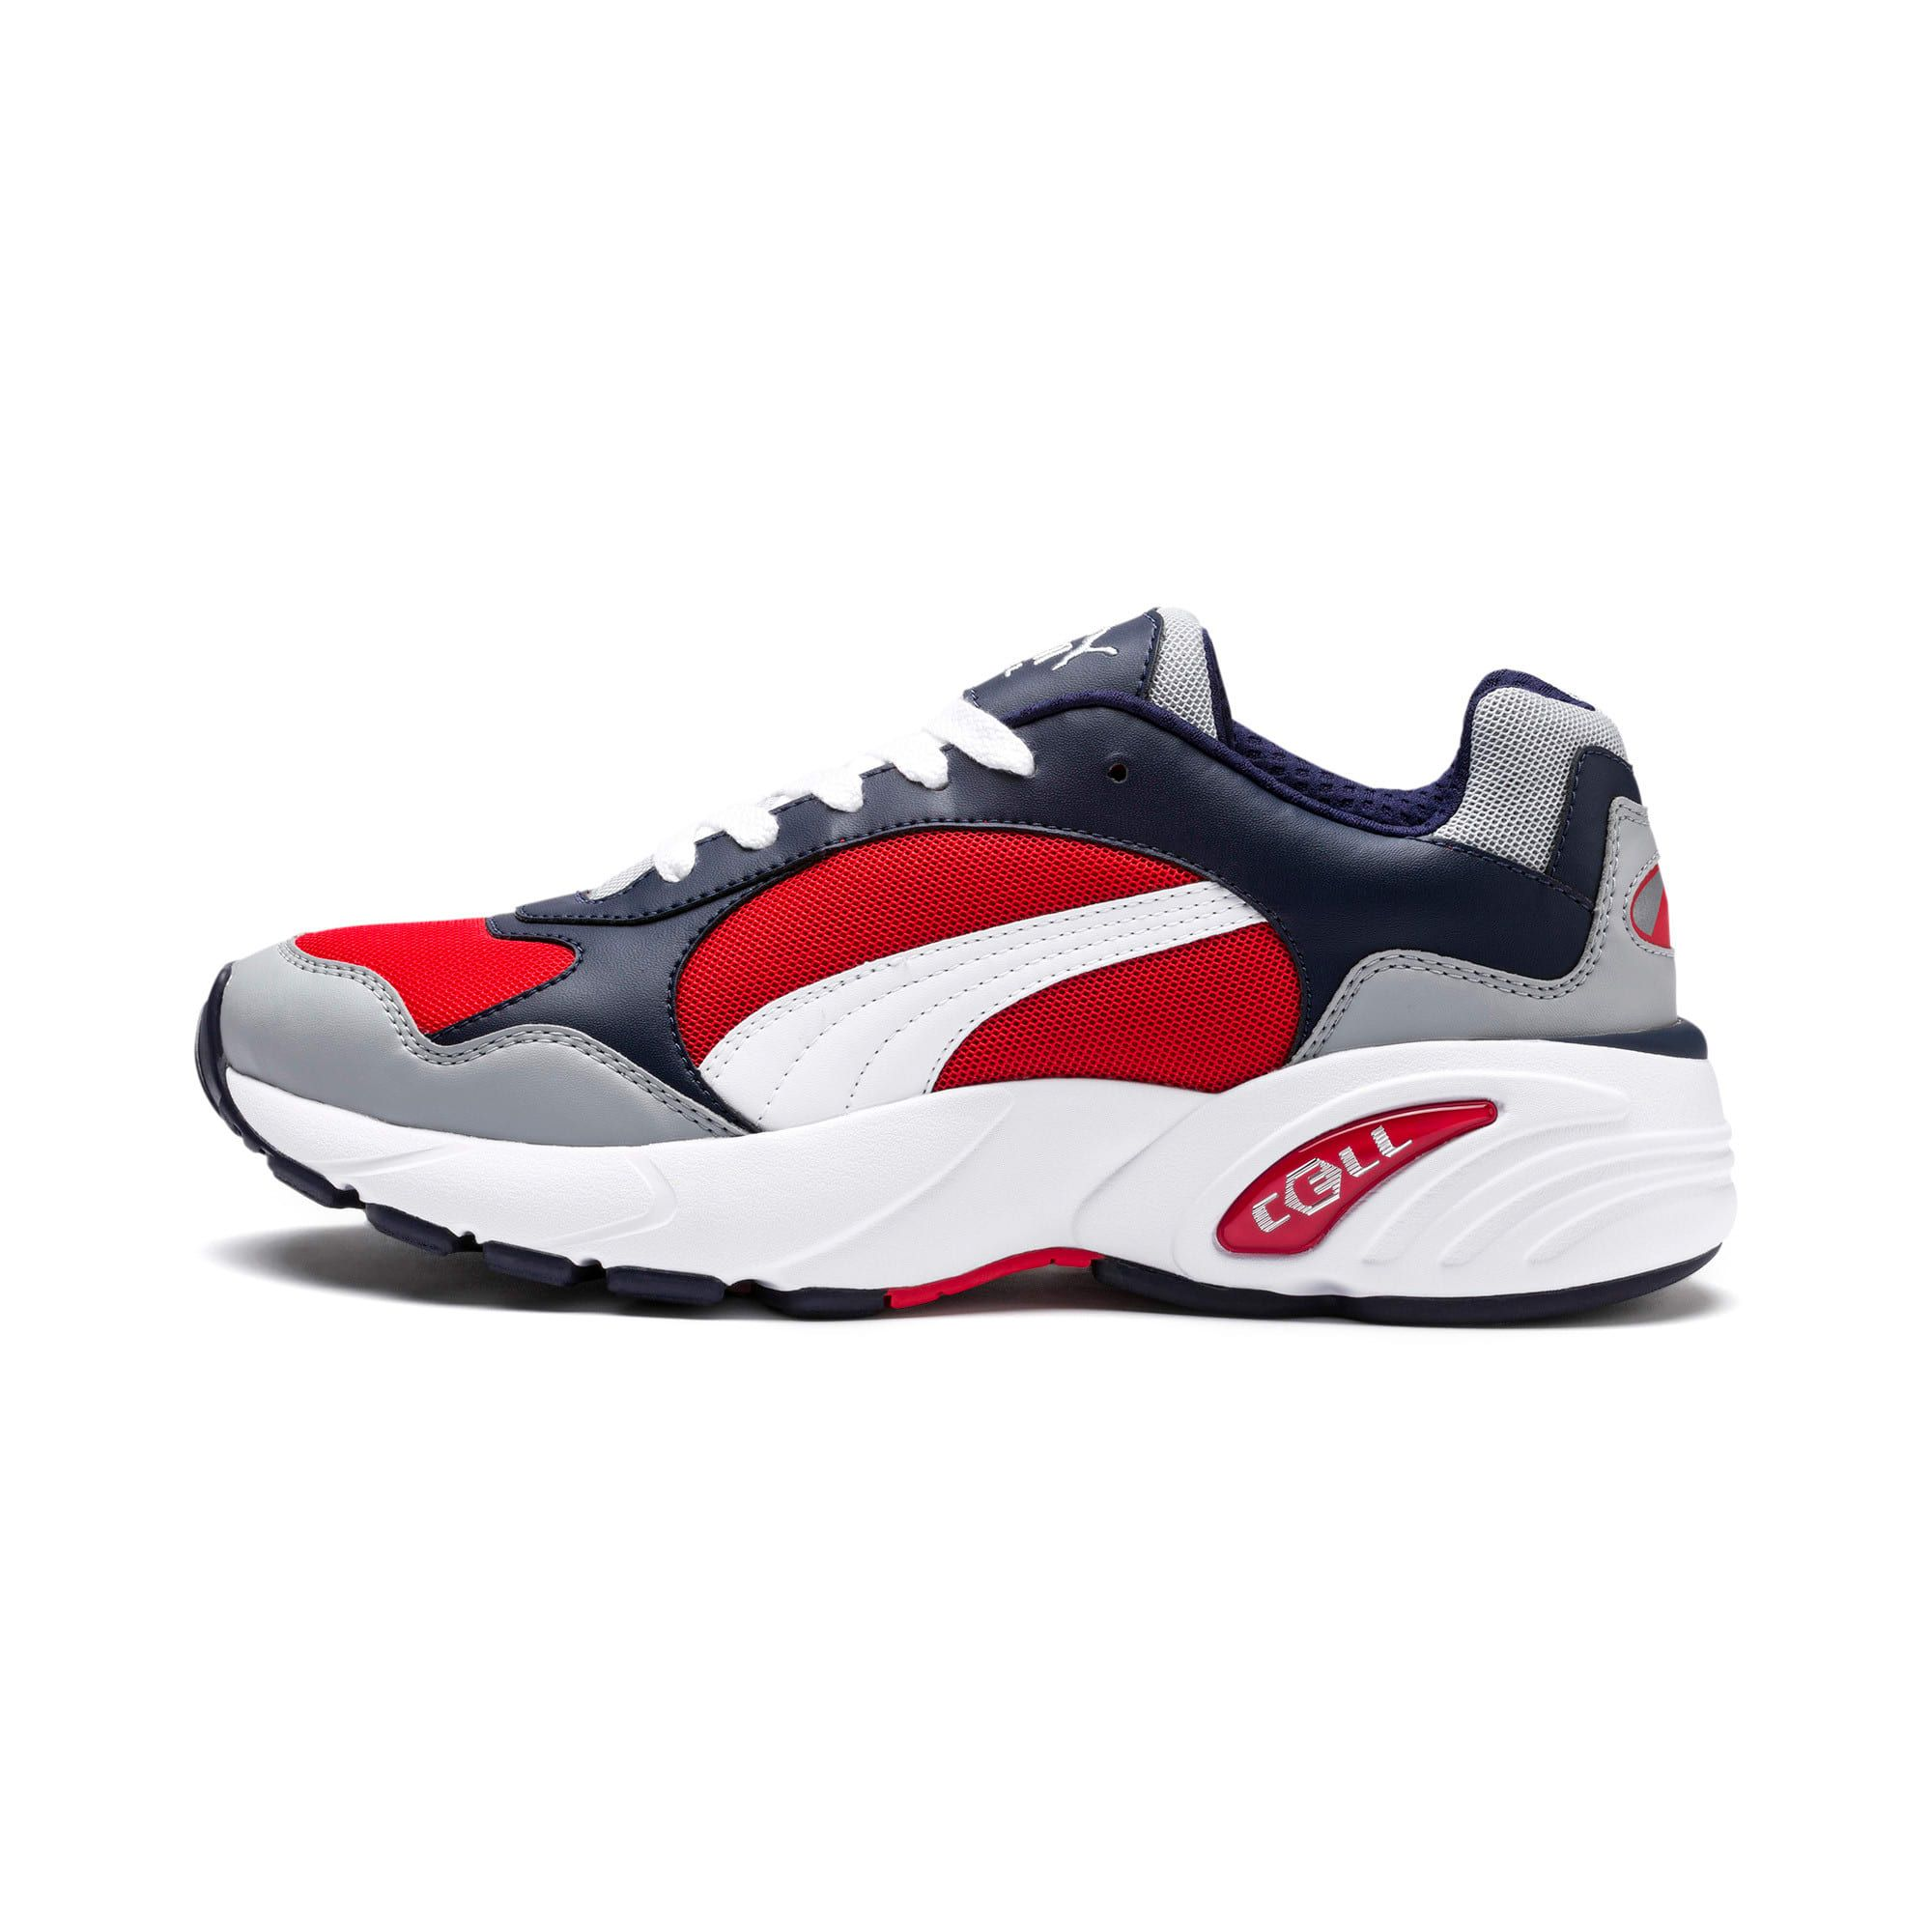 CELL Viper Trainers | Leather, Trainers